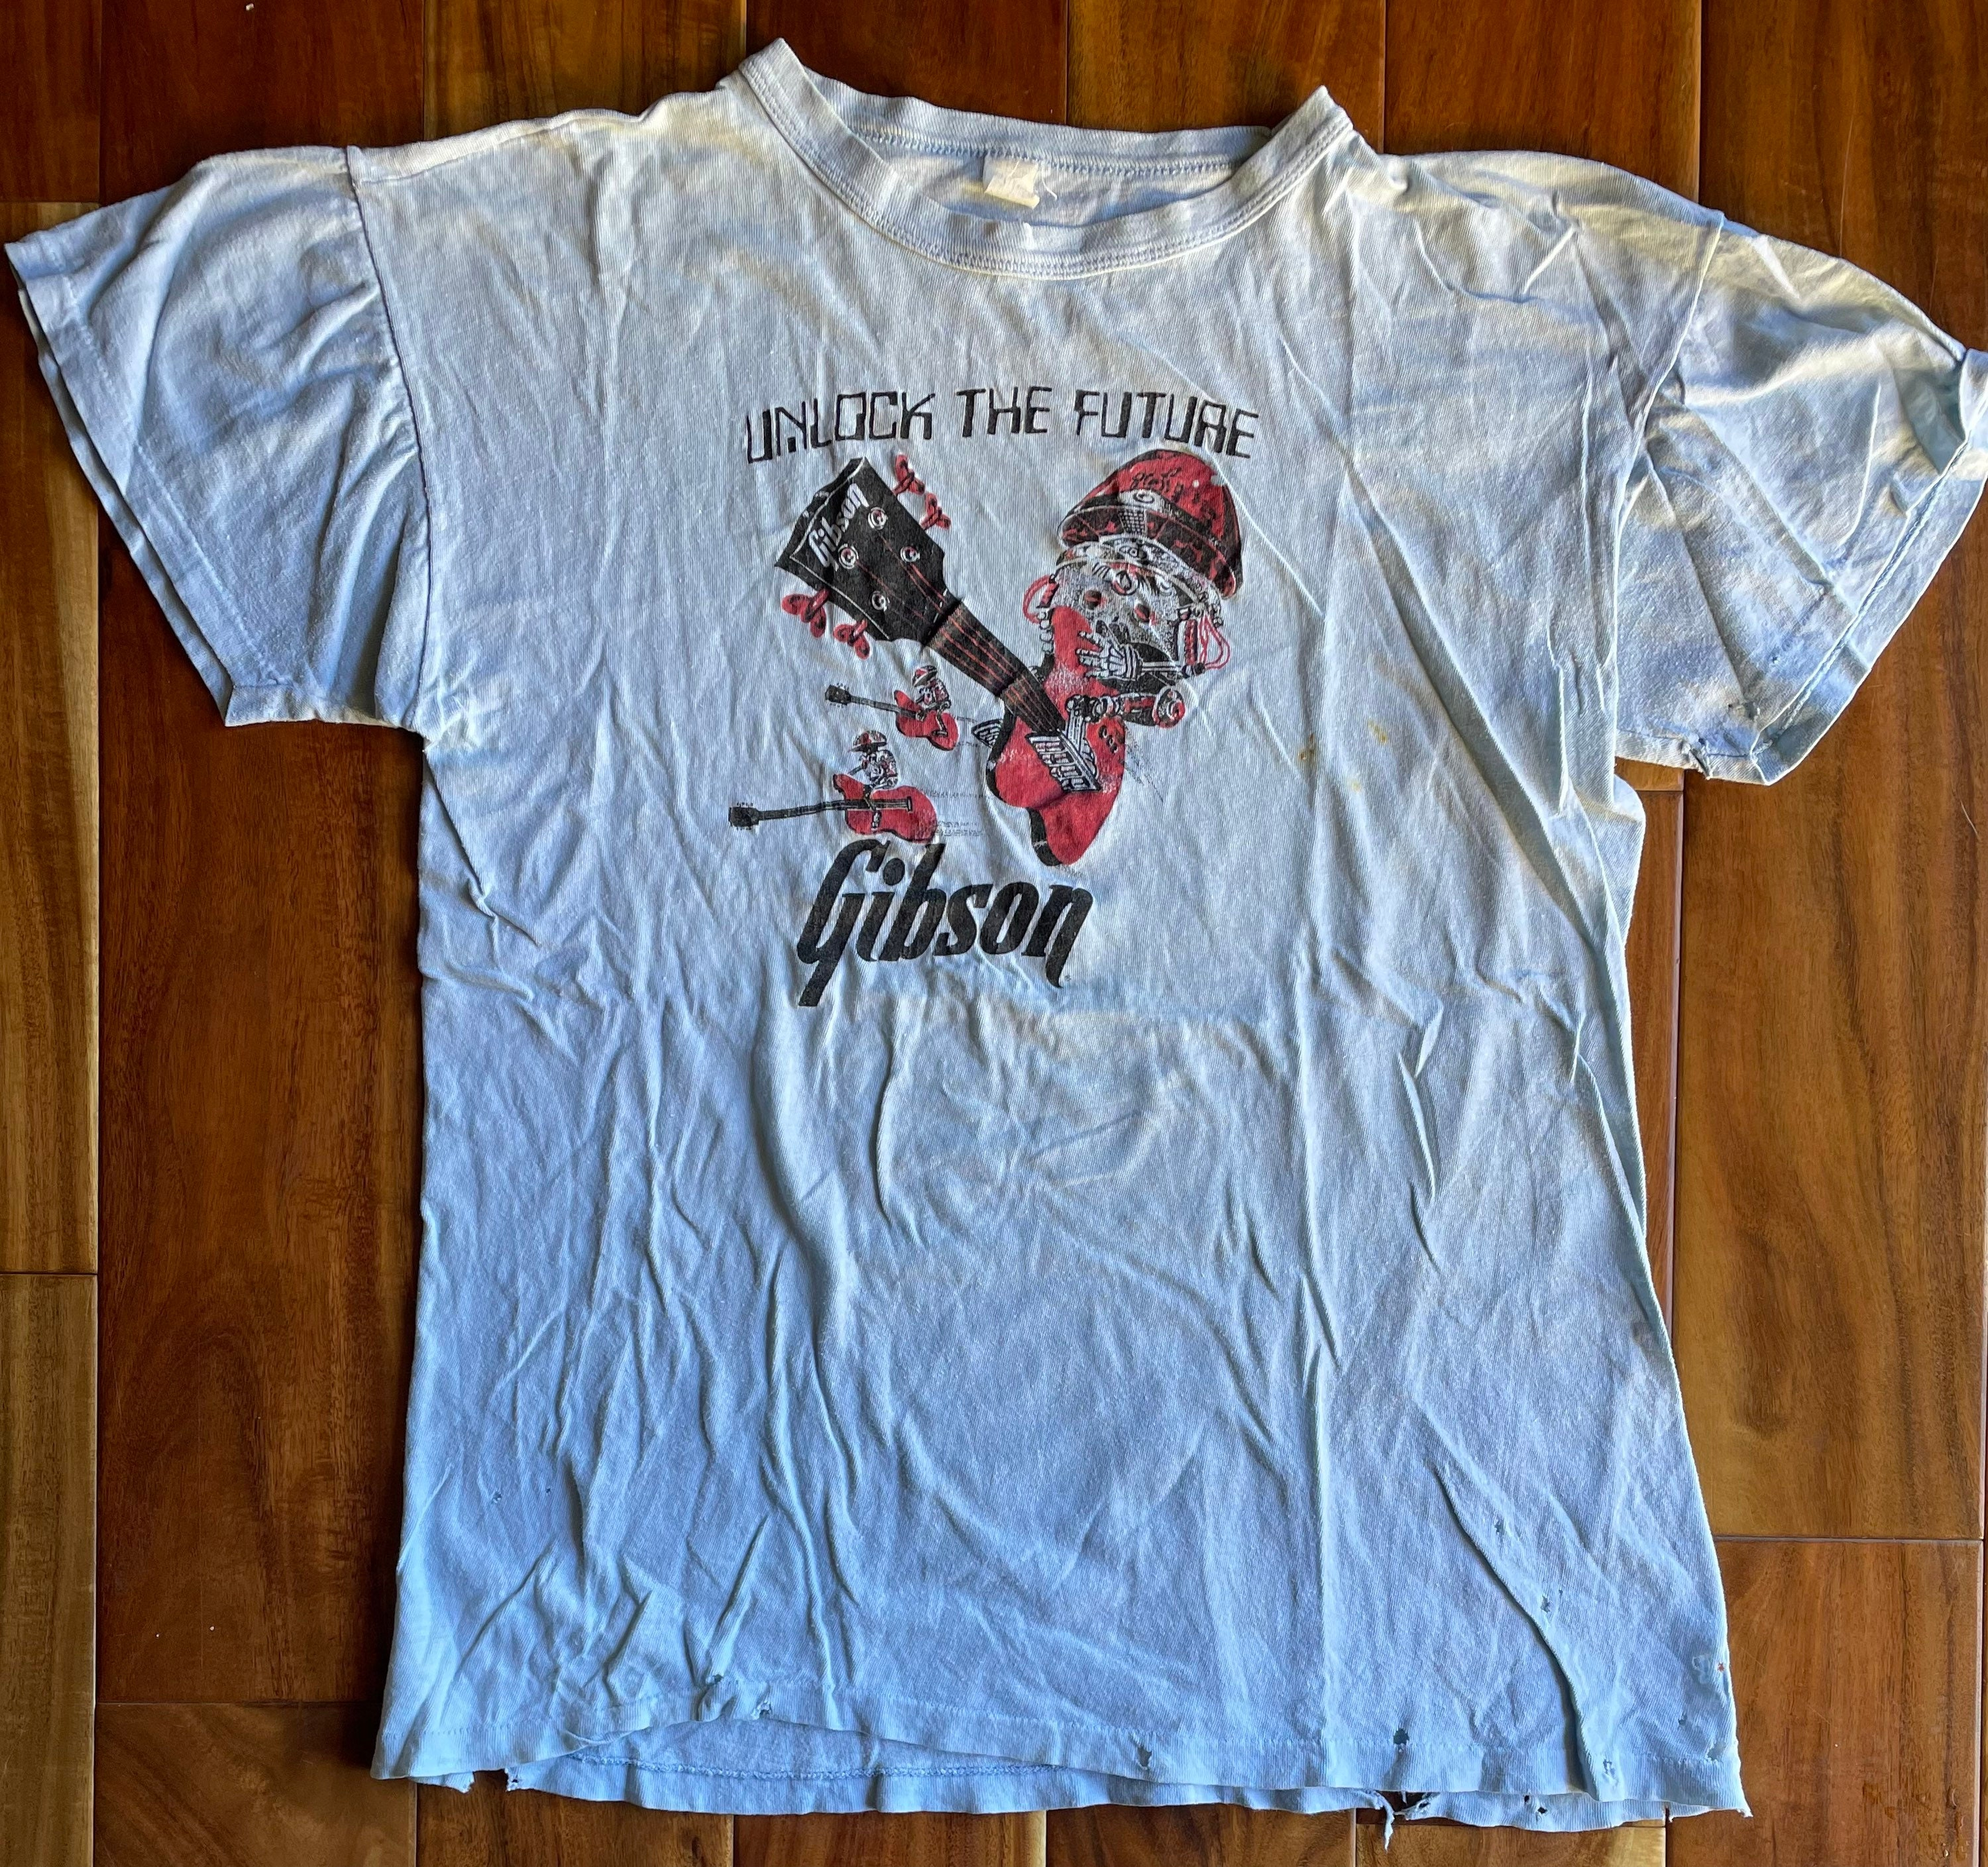 1970s Mens Shirt Styles – Vintage 70s Shirts for Guys Distressed Gibson Unlock The Future Tee, 1970S $0.00 AT vintagedancer.com